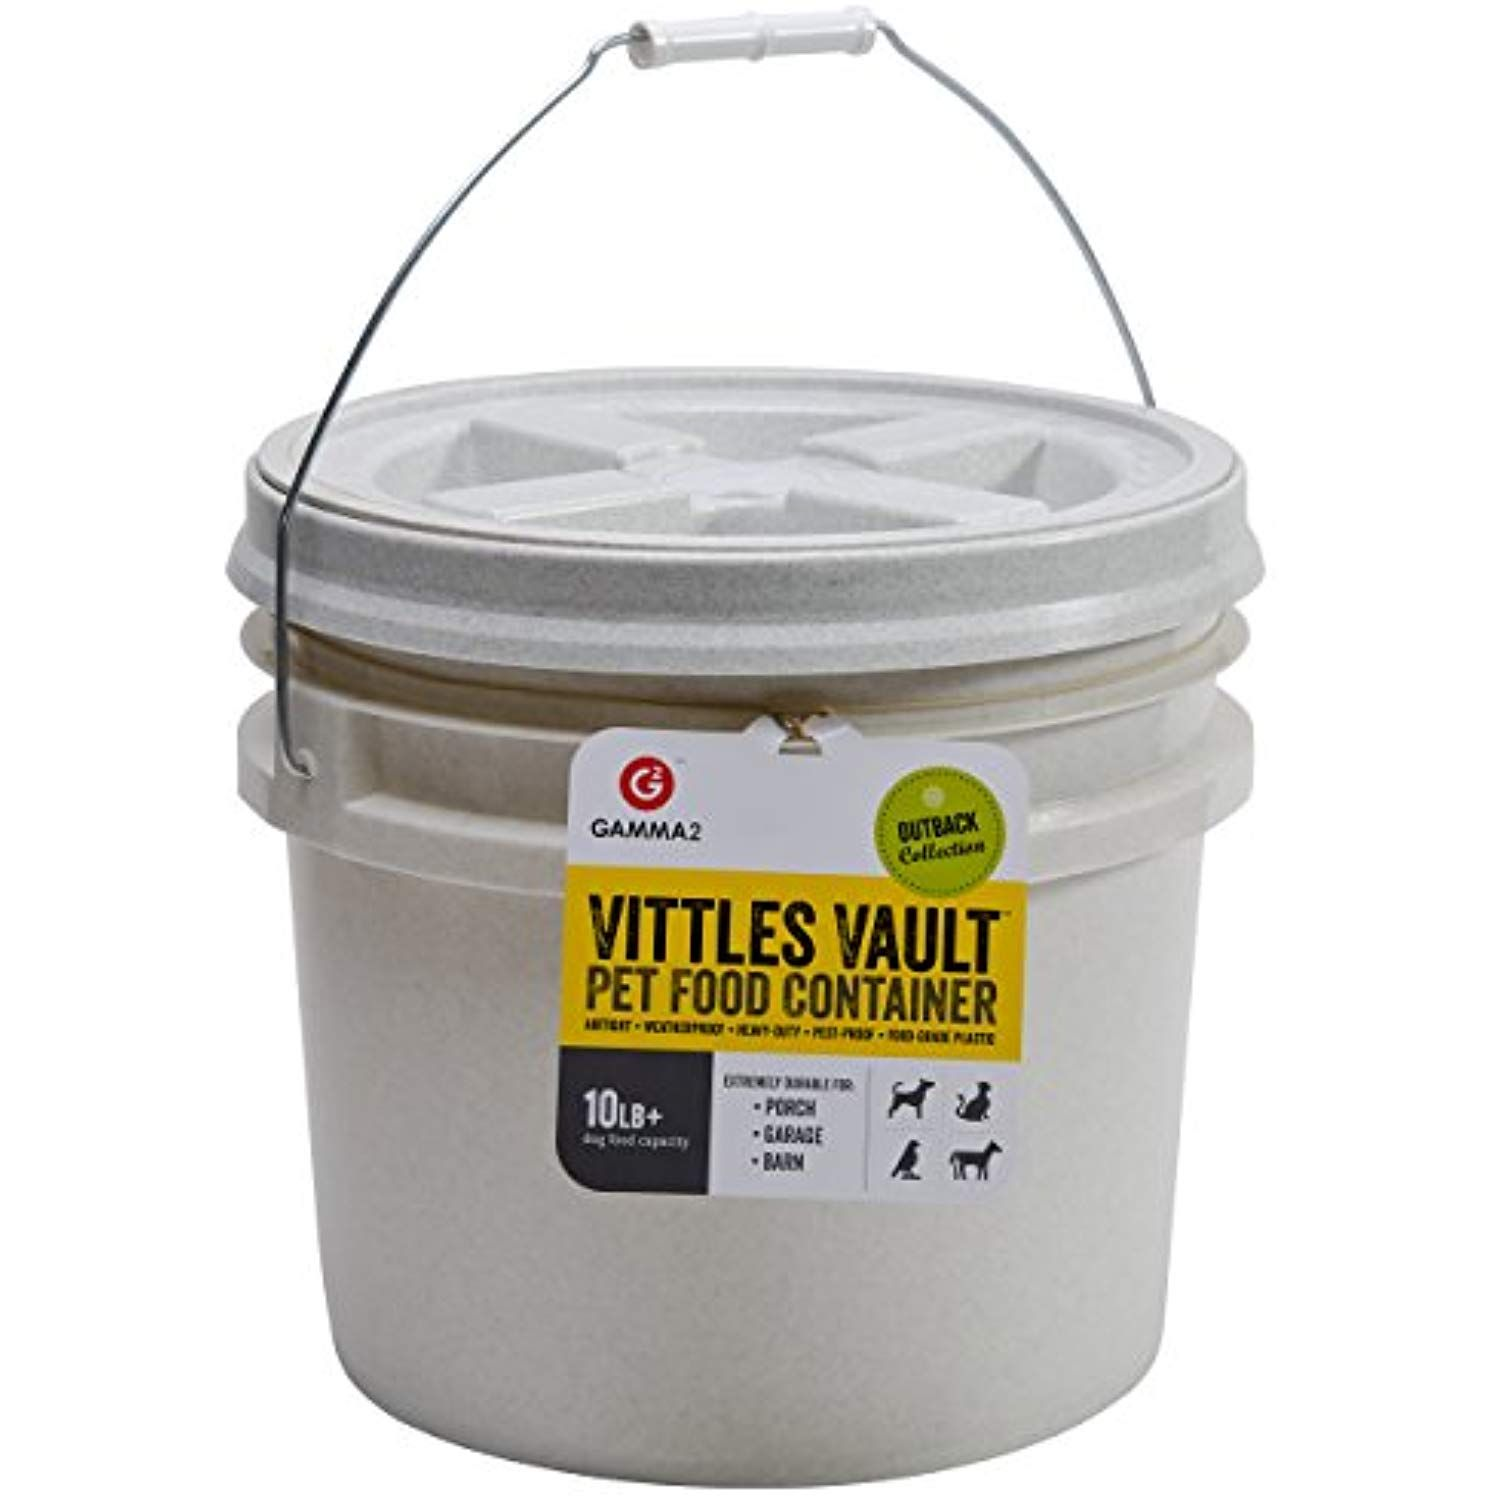 Gamma2 Vittles Vault 10 Lb Airtight Bucket Container For Food Storage Food Grade And Bpa Free Ch With Images Food Animals Pet Food Container Pet Food Storage Container